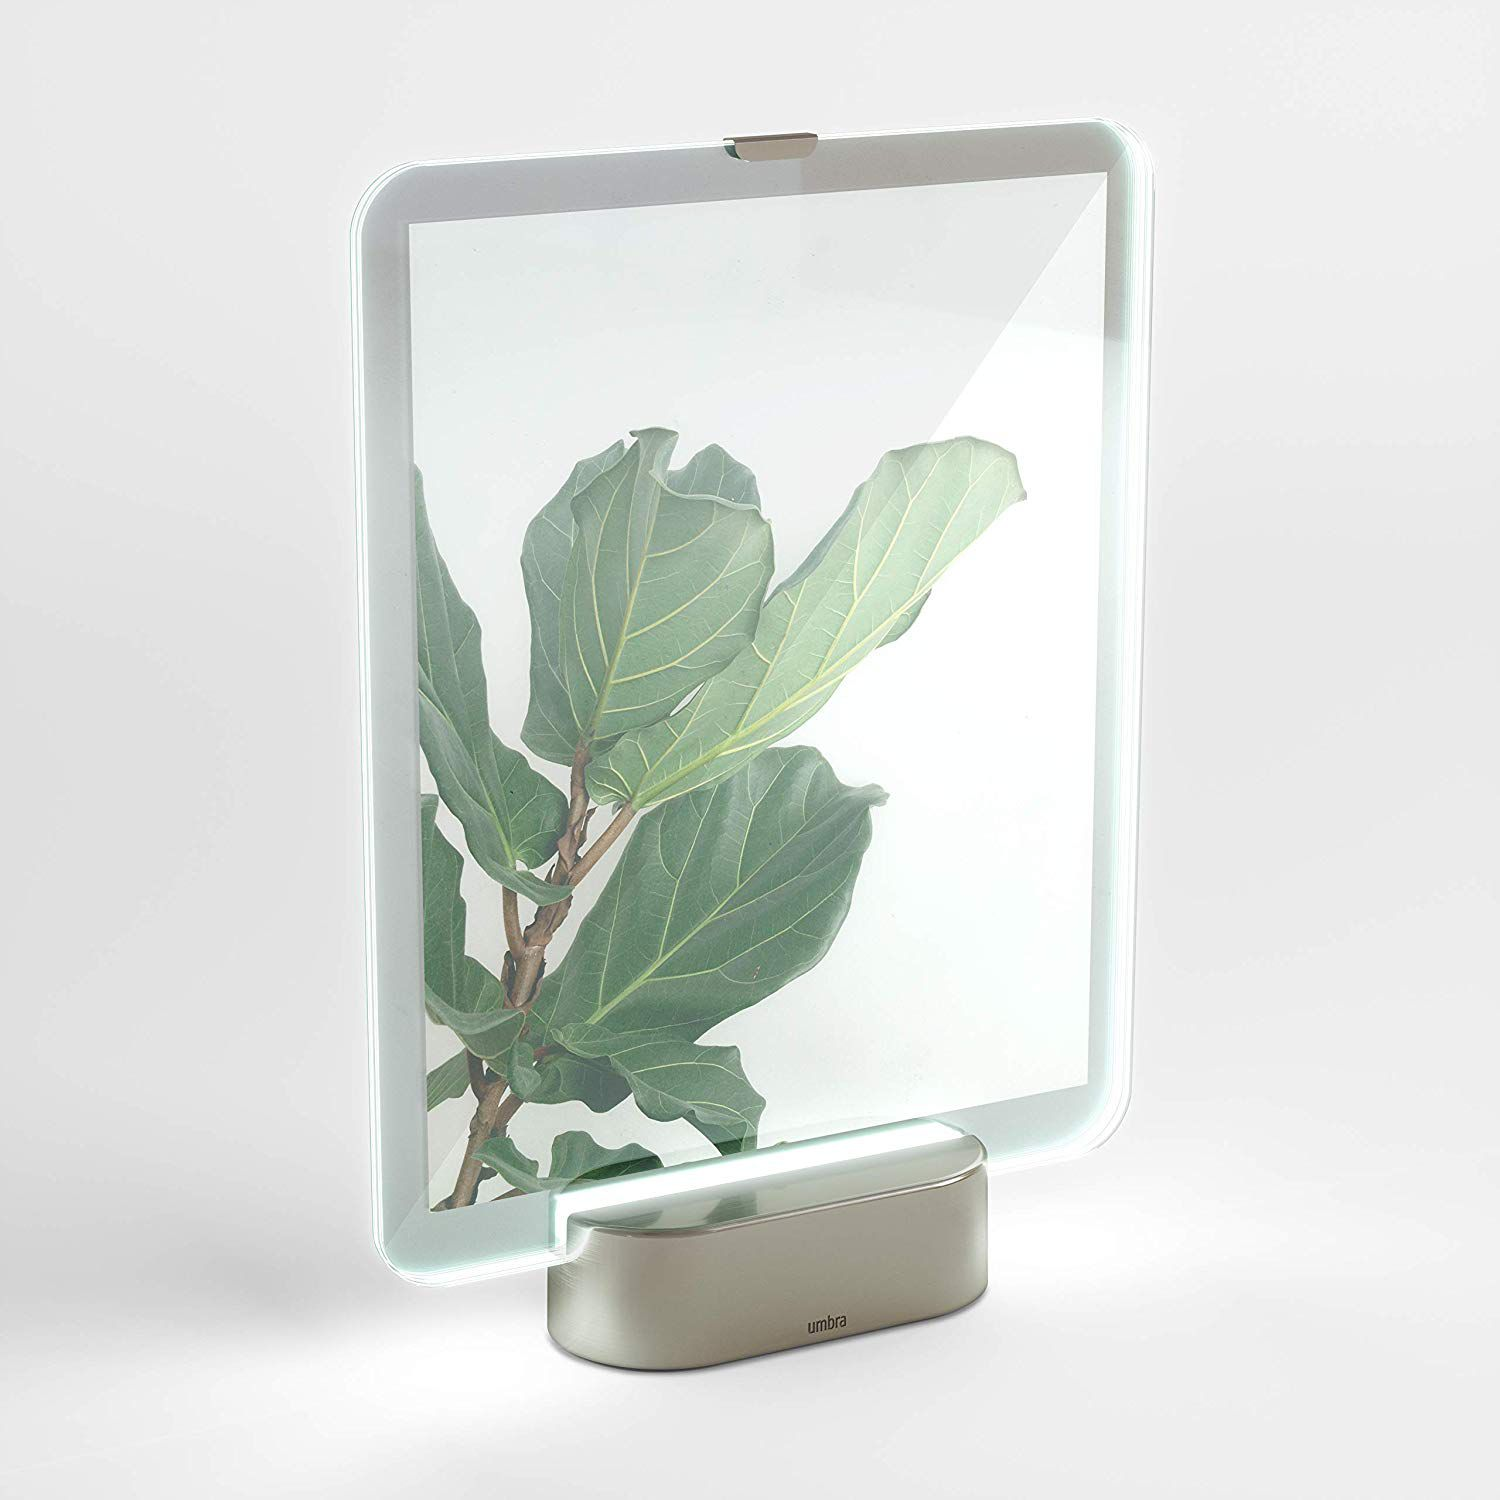 PORTA RETRATO LED GLO NICKEL UMBRA